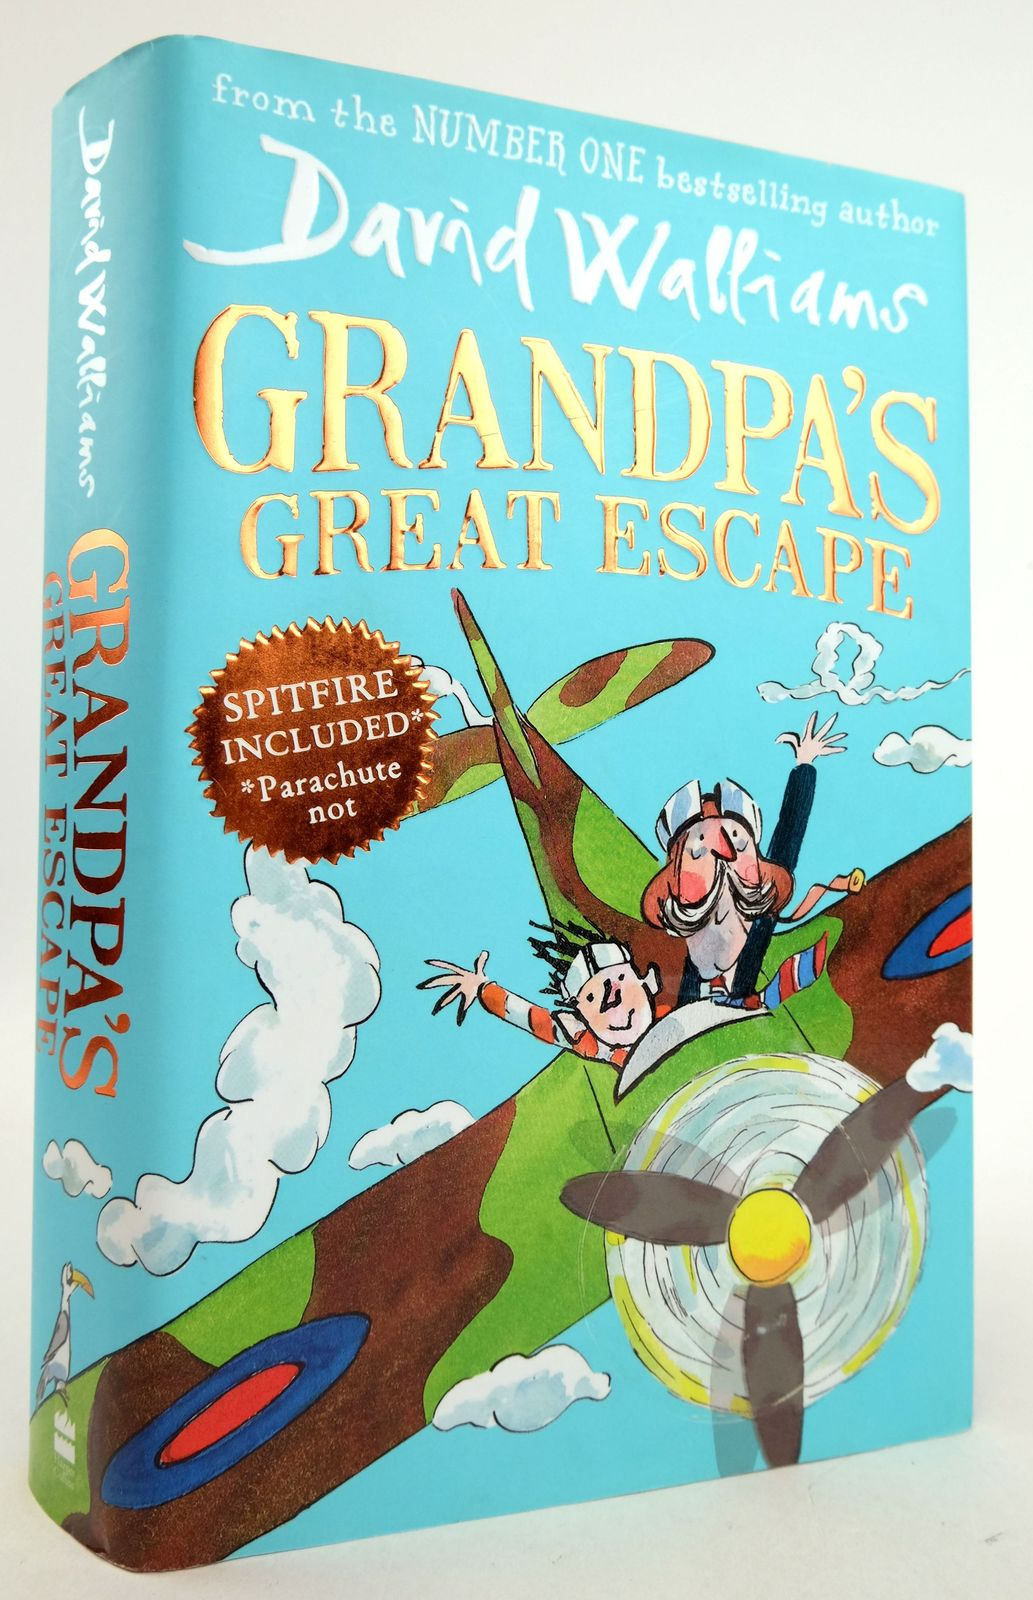 Photo of GRANDPA'S GREAT ESCAPE written by Walliams, David illustrated by Ross, Tony published by Harper Collins Childrens Books (STOCK CODE: 1819947)  for sale by Stella & Rose's Books